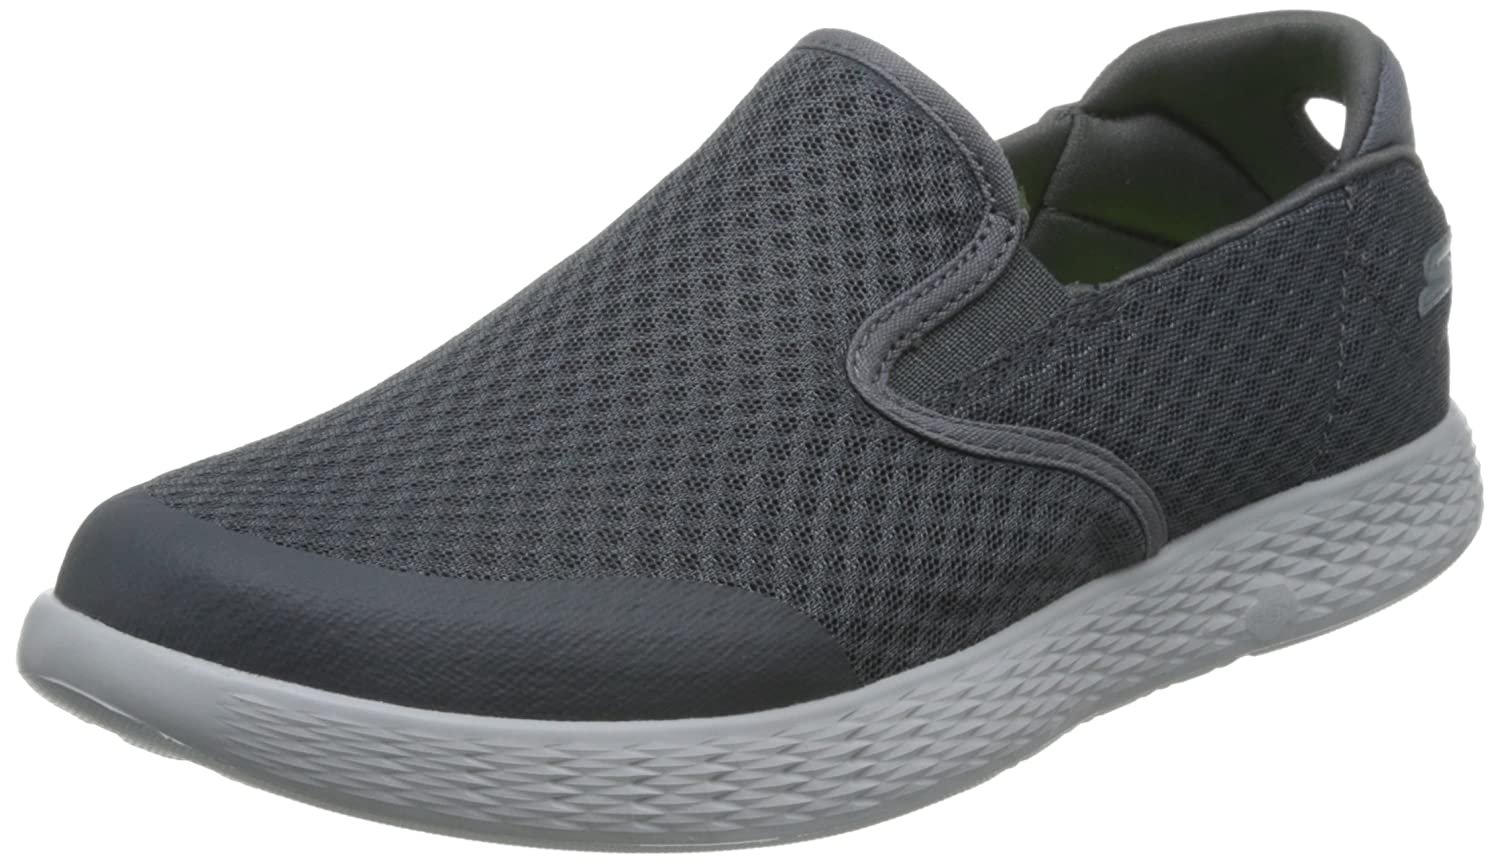 Skechers On the Go Glide 53780 Navy NVGY Turnschuhe Turnschuhe Turnschuhe Goga Max 9f2d4c